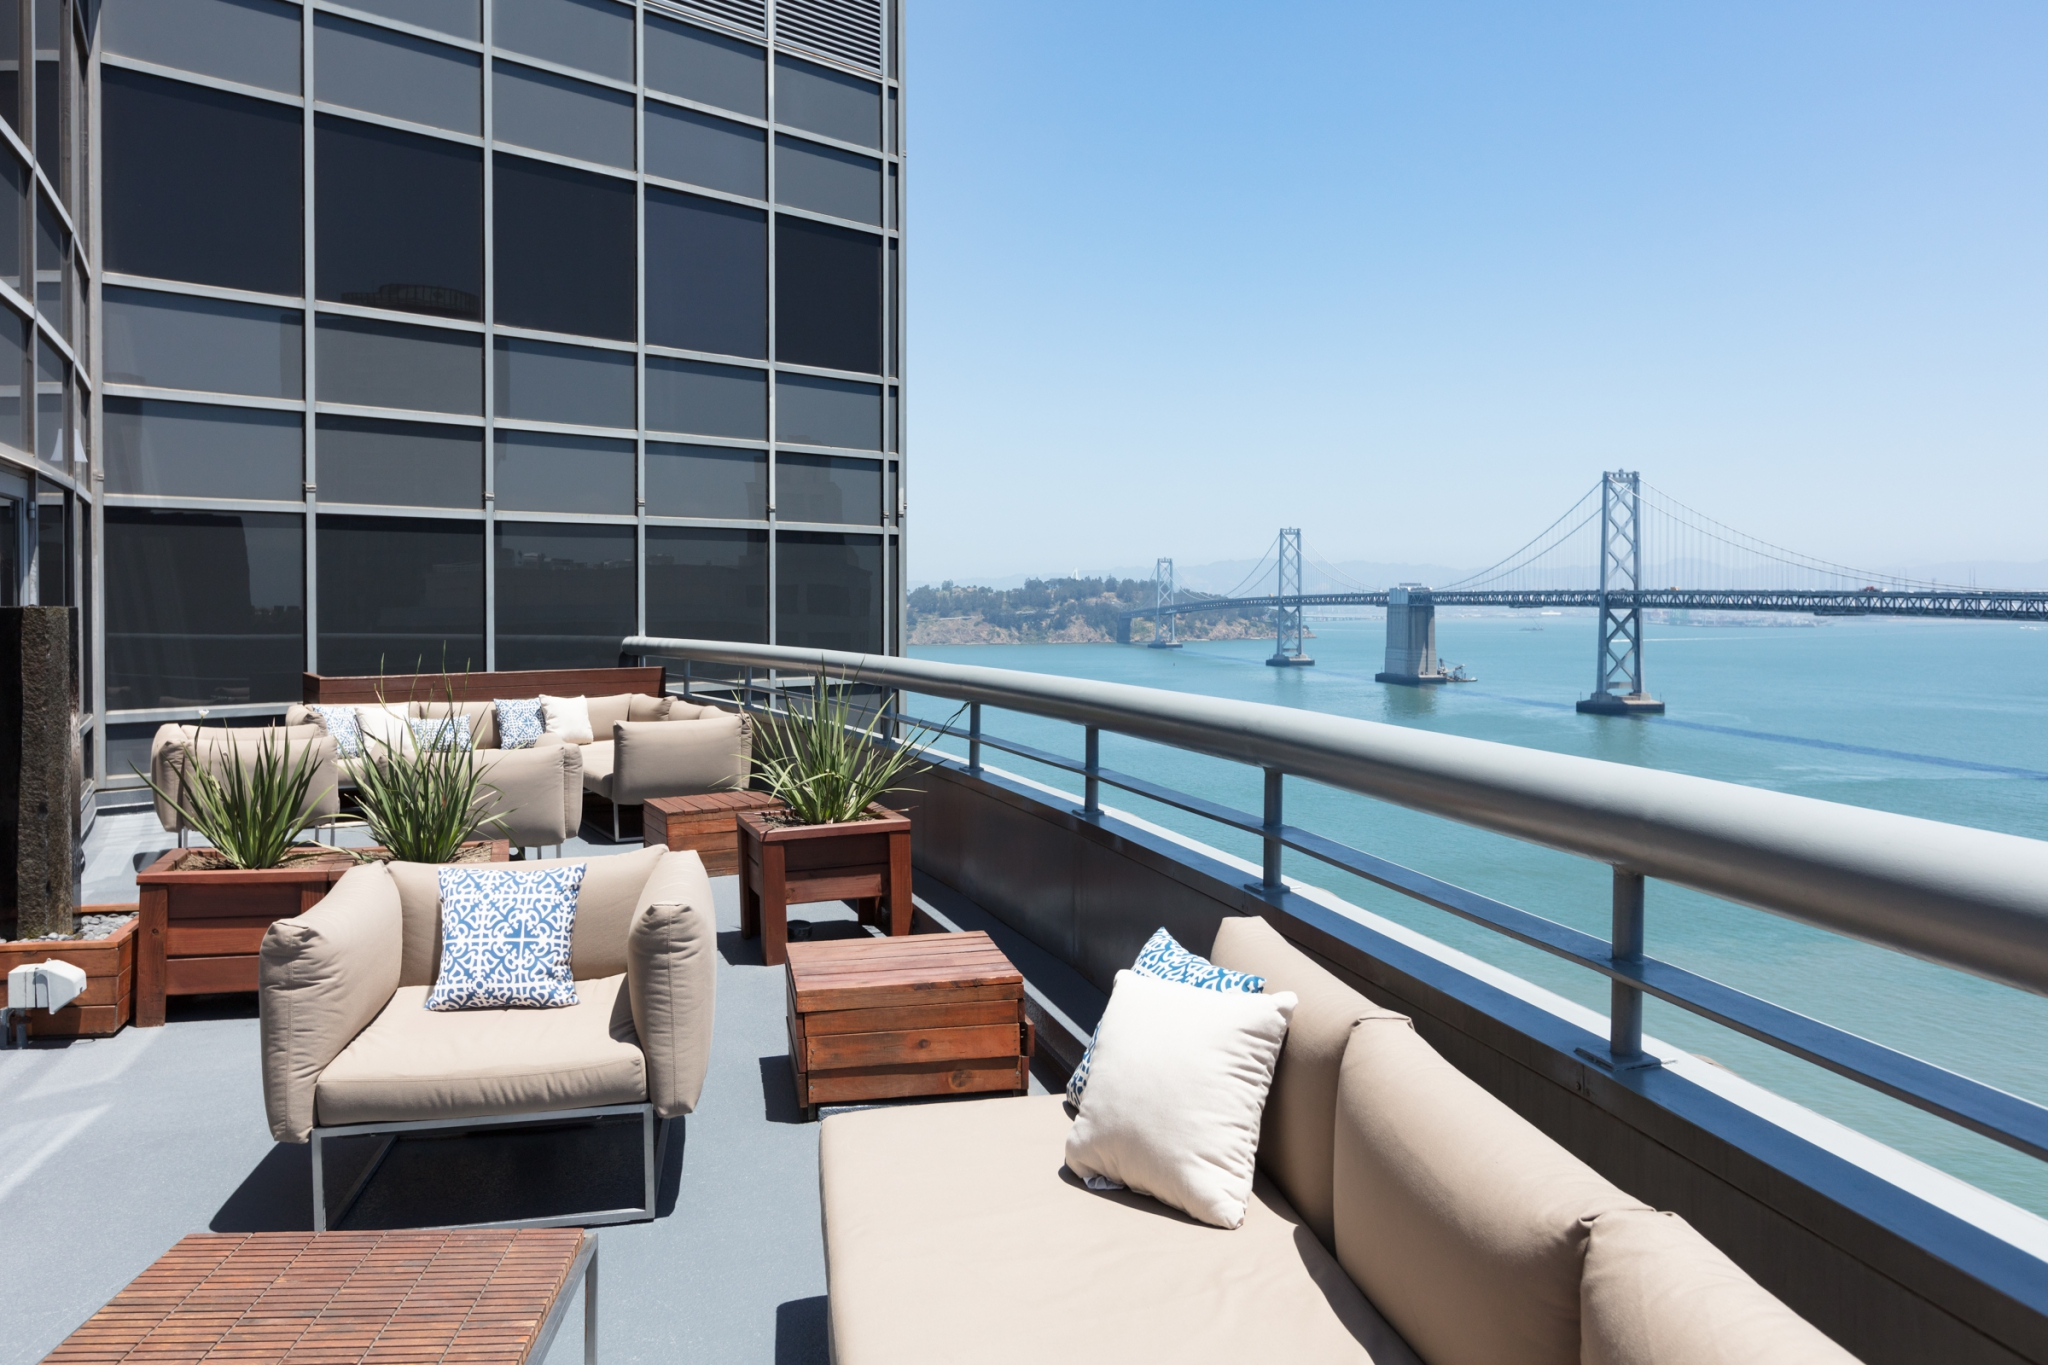 Outdoor deck with a view of the San Francisco Bay Bridge.